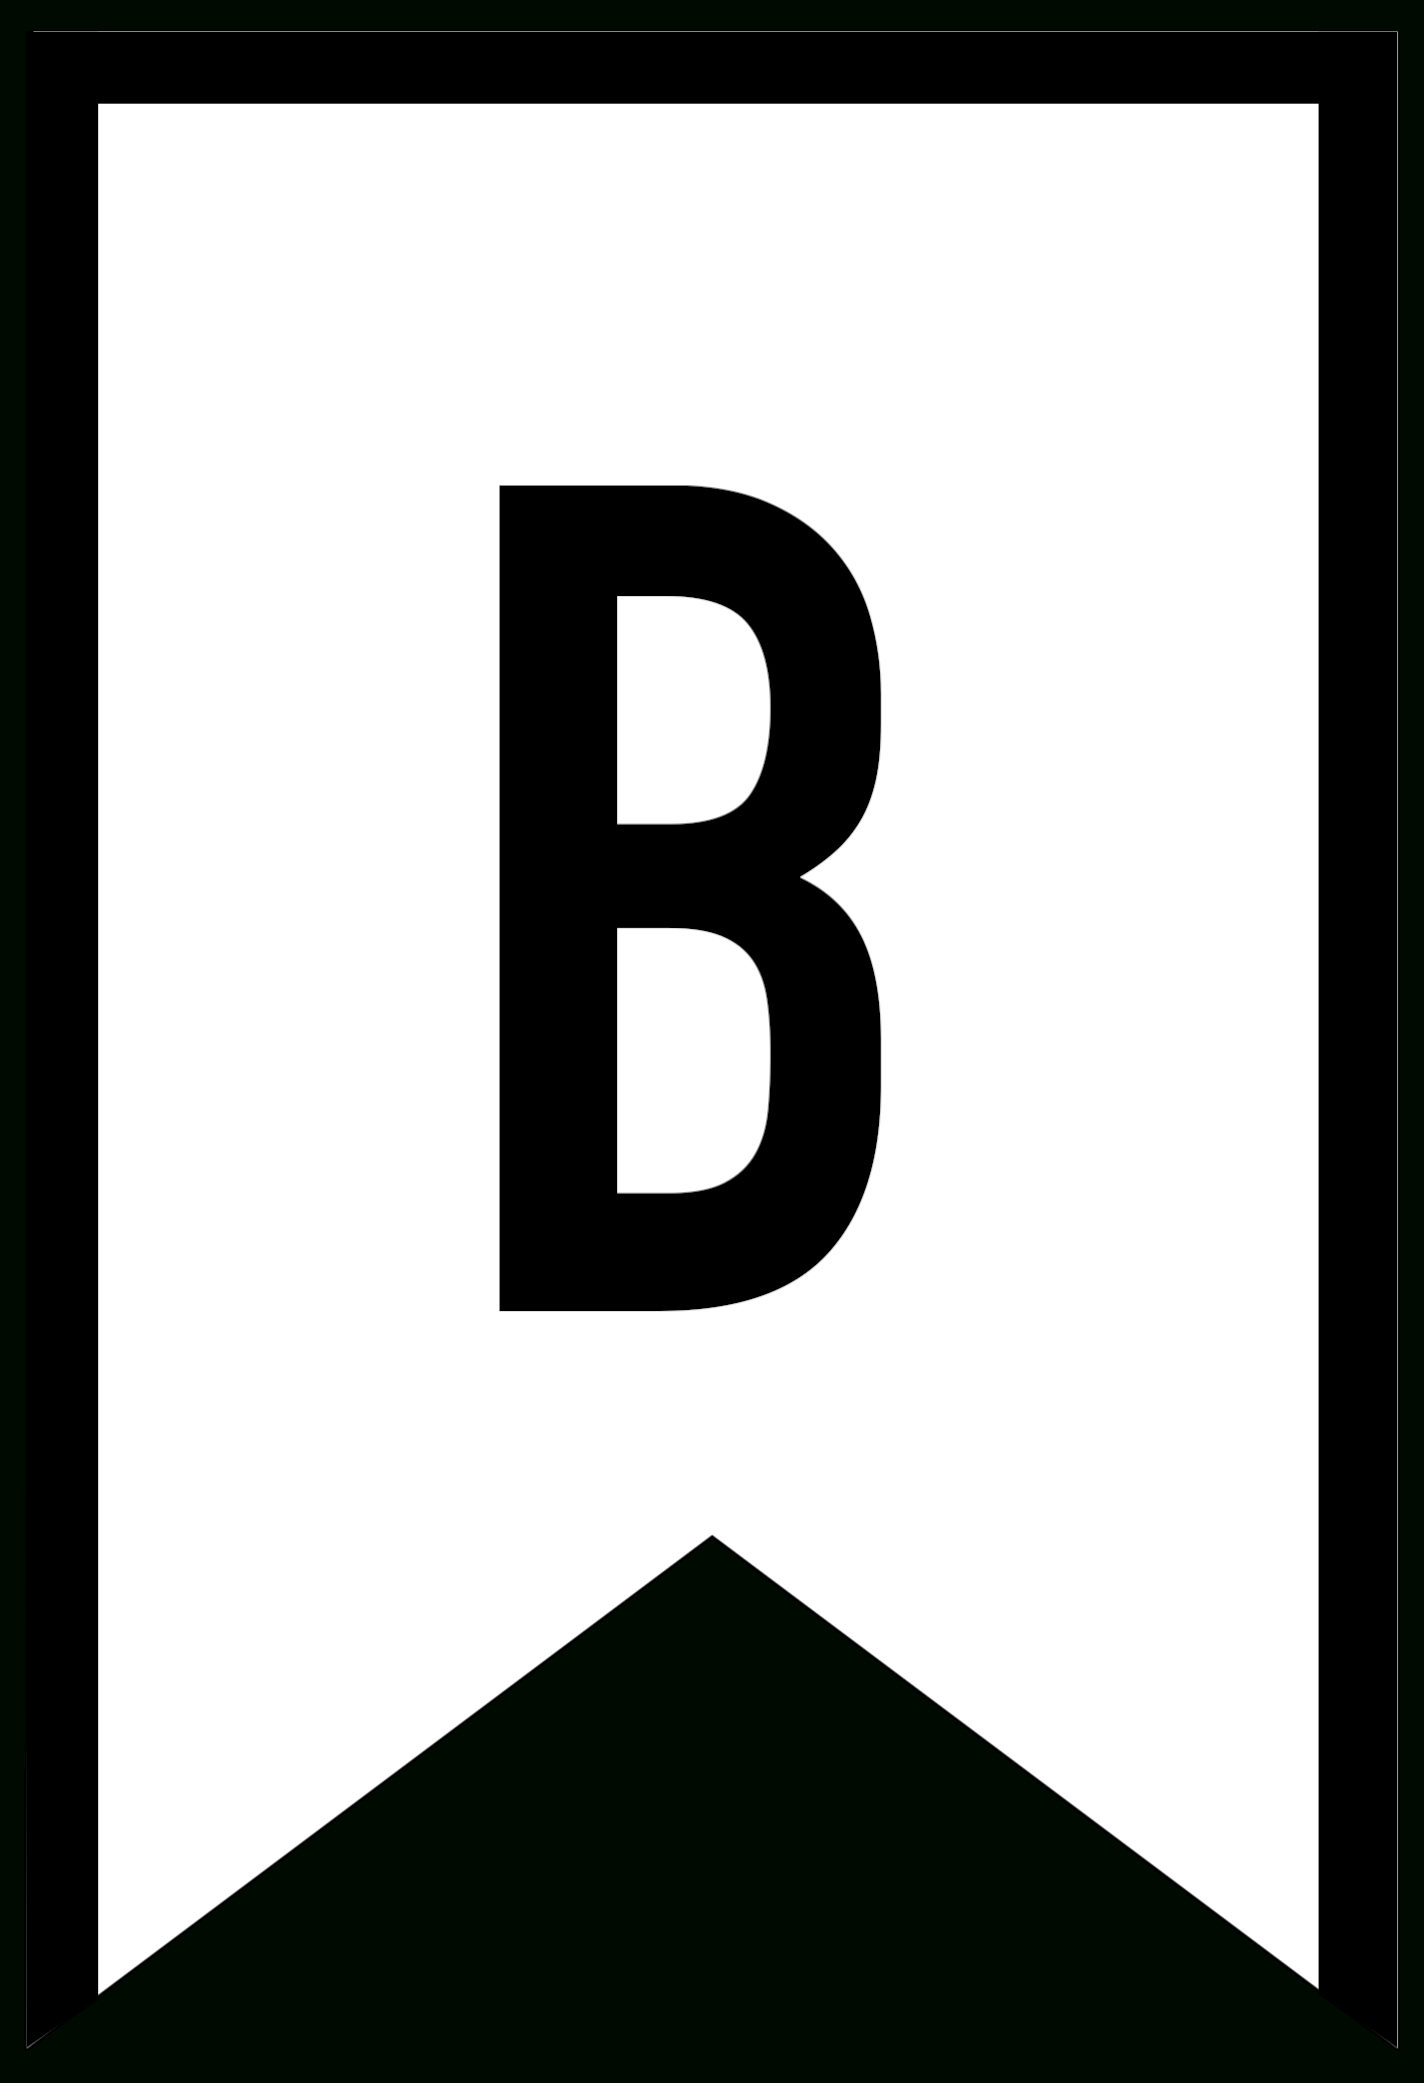 Banner Templates Free Printable Abc Letters  Paper Trail Design Within Letter Templates For Banners